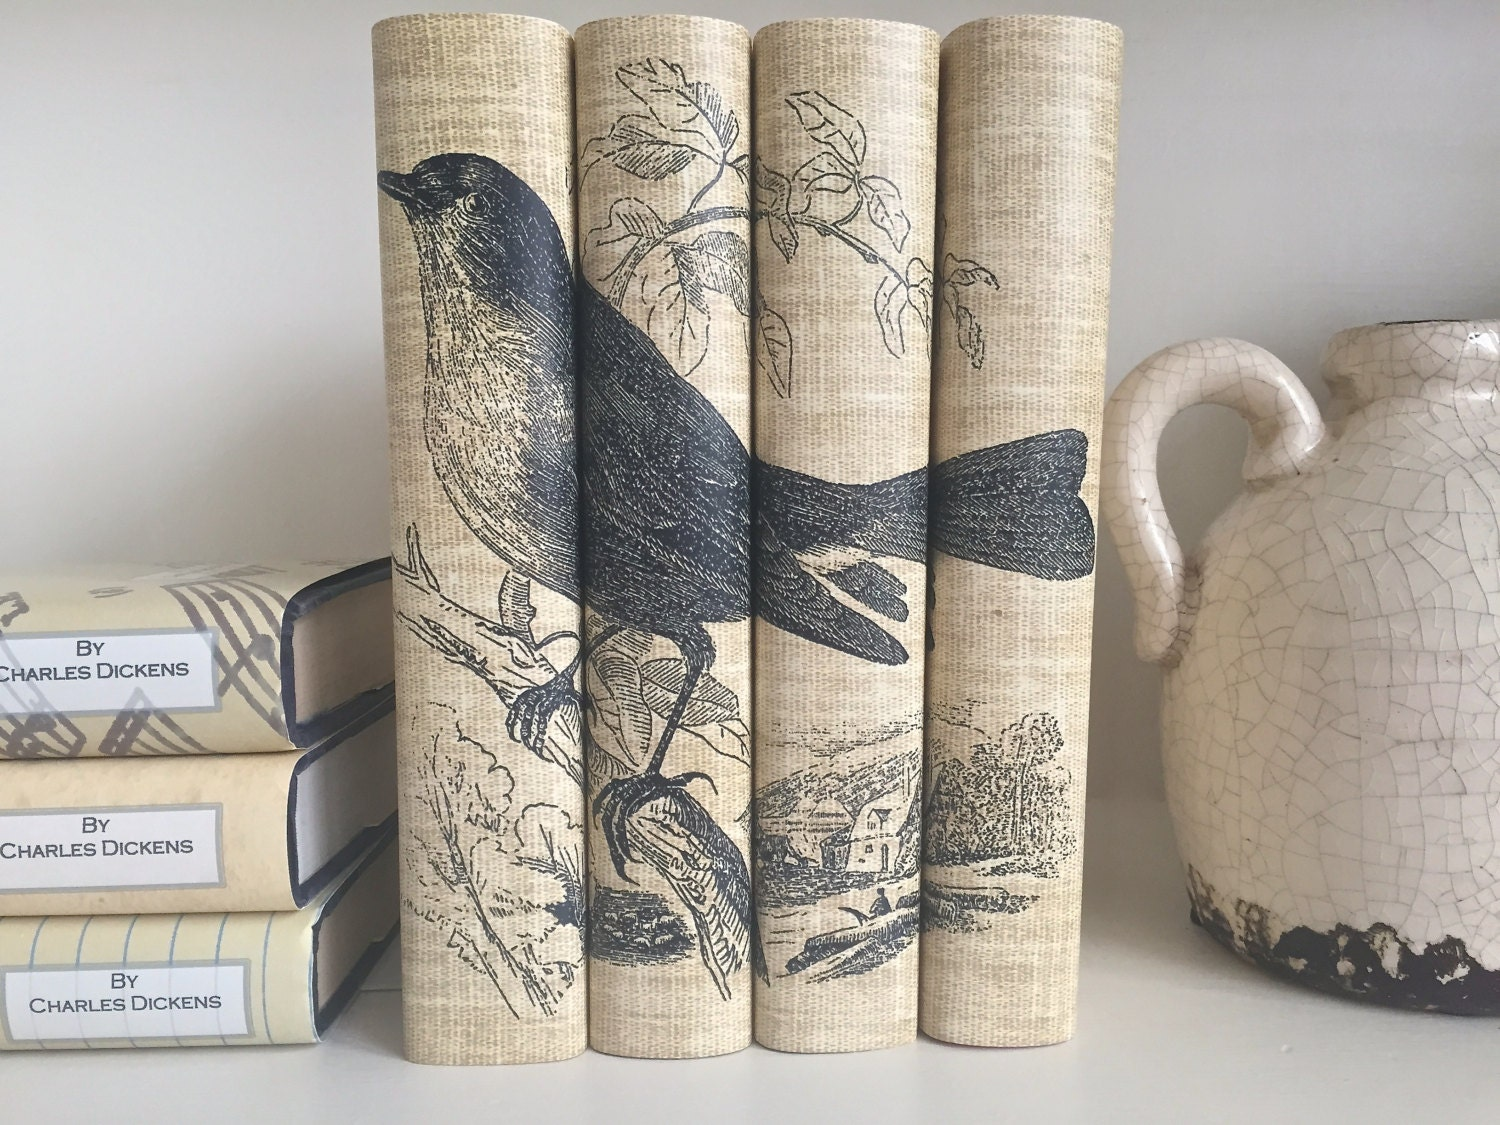 Book Cover Design Of Birds : Decorative books with bird book covers neutral color